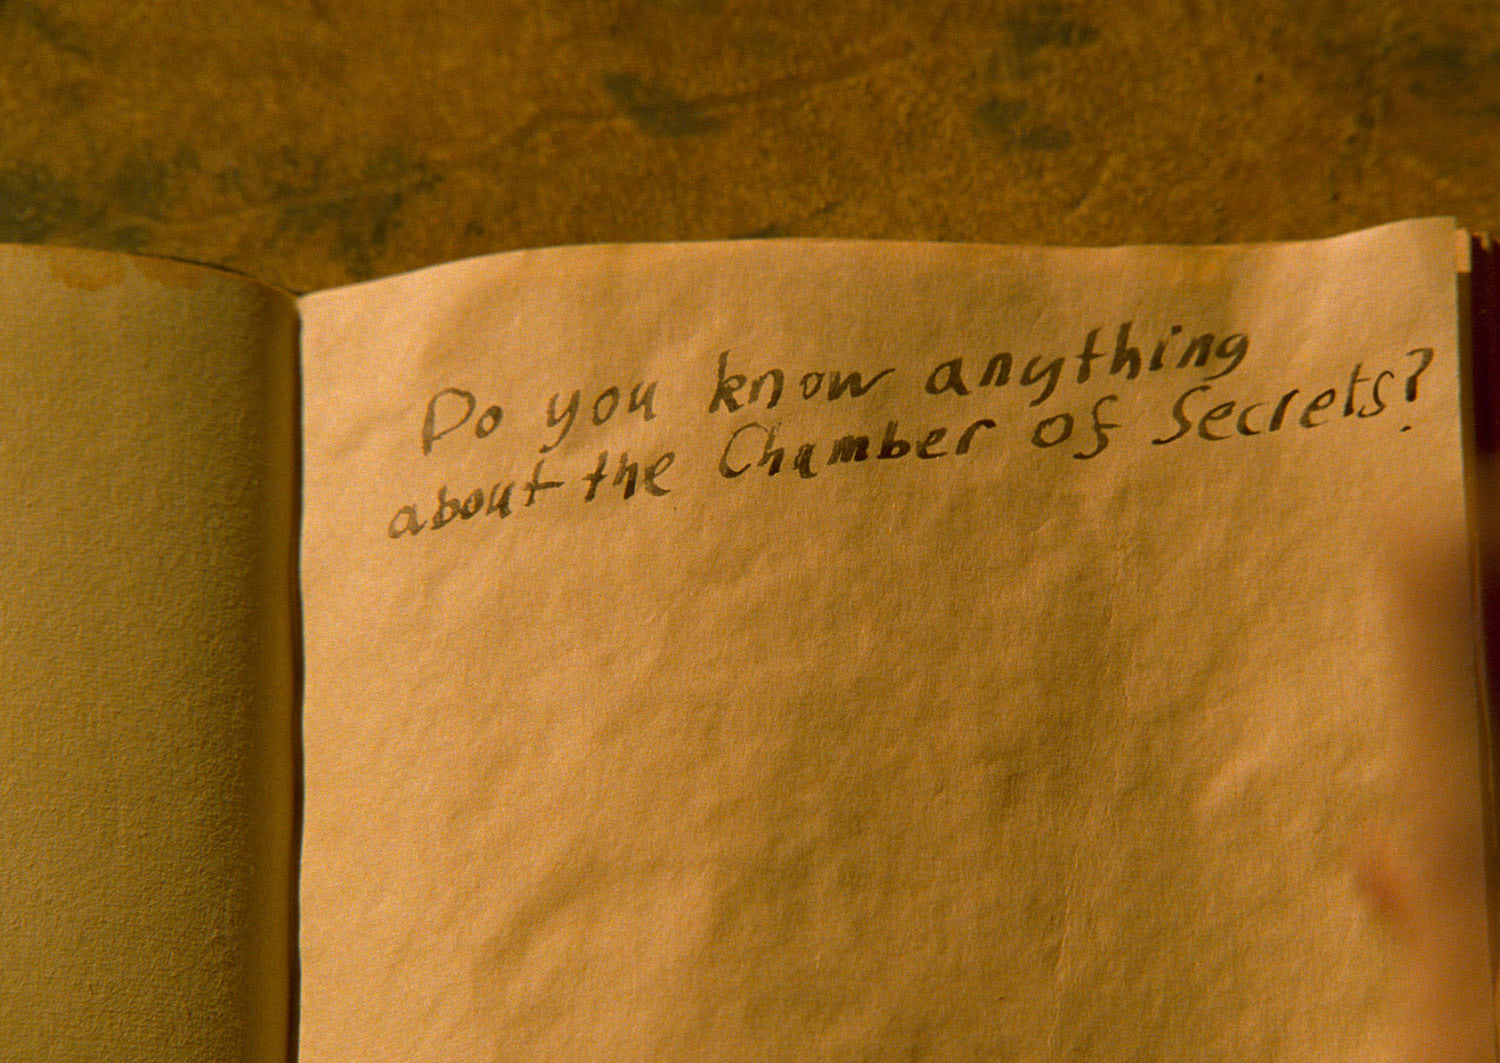 Writing in Tom Riddle's diary